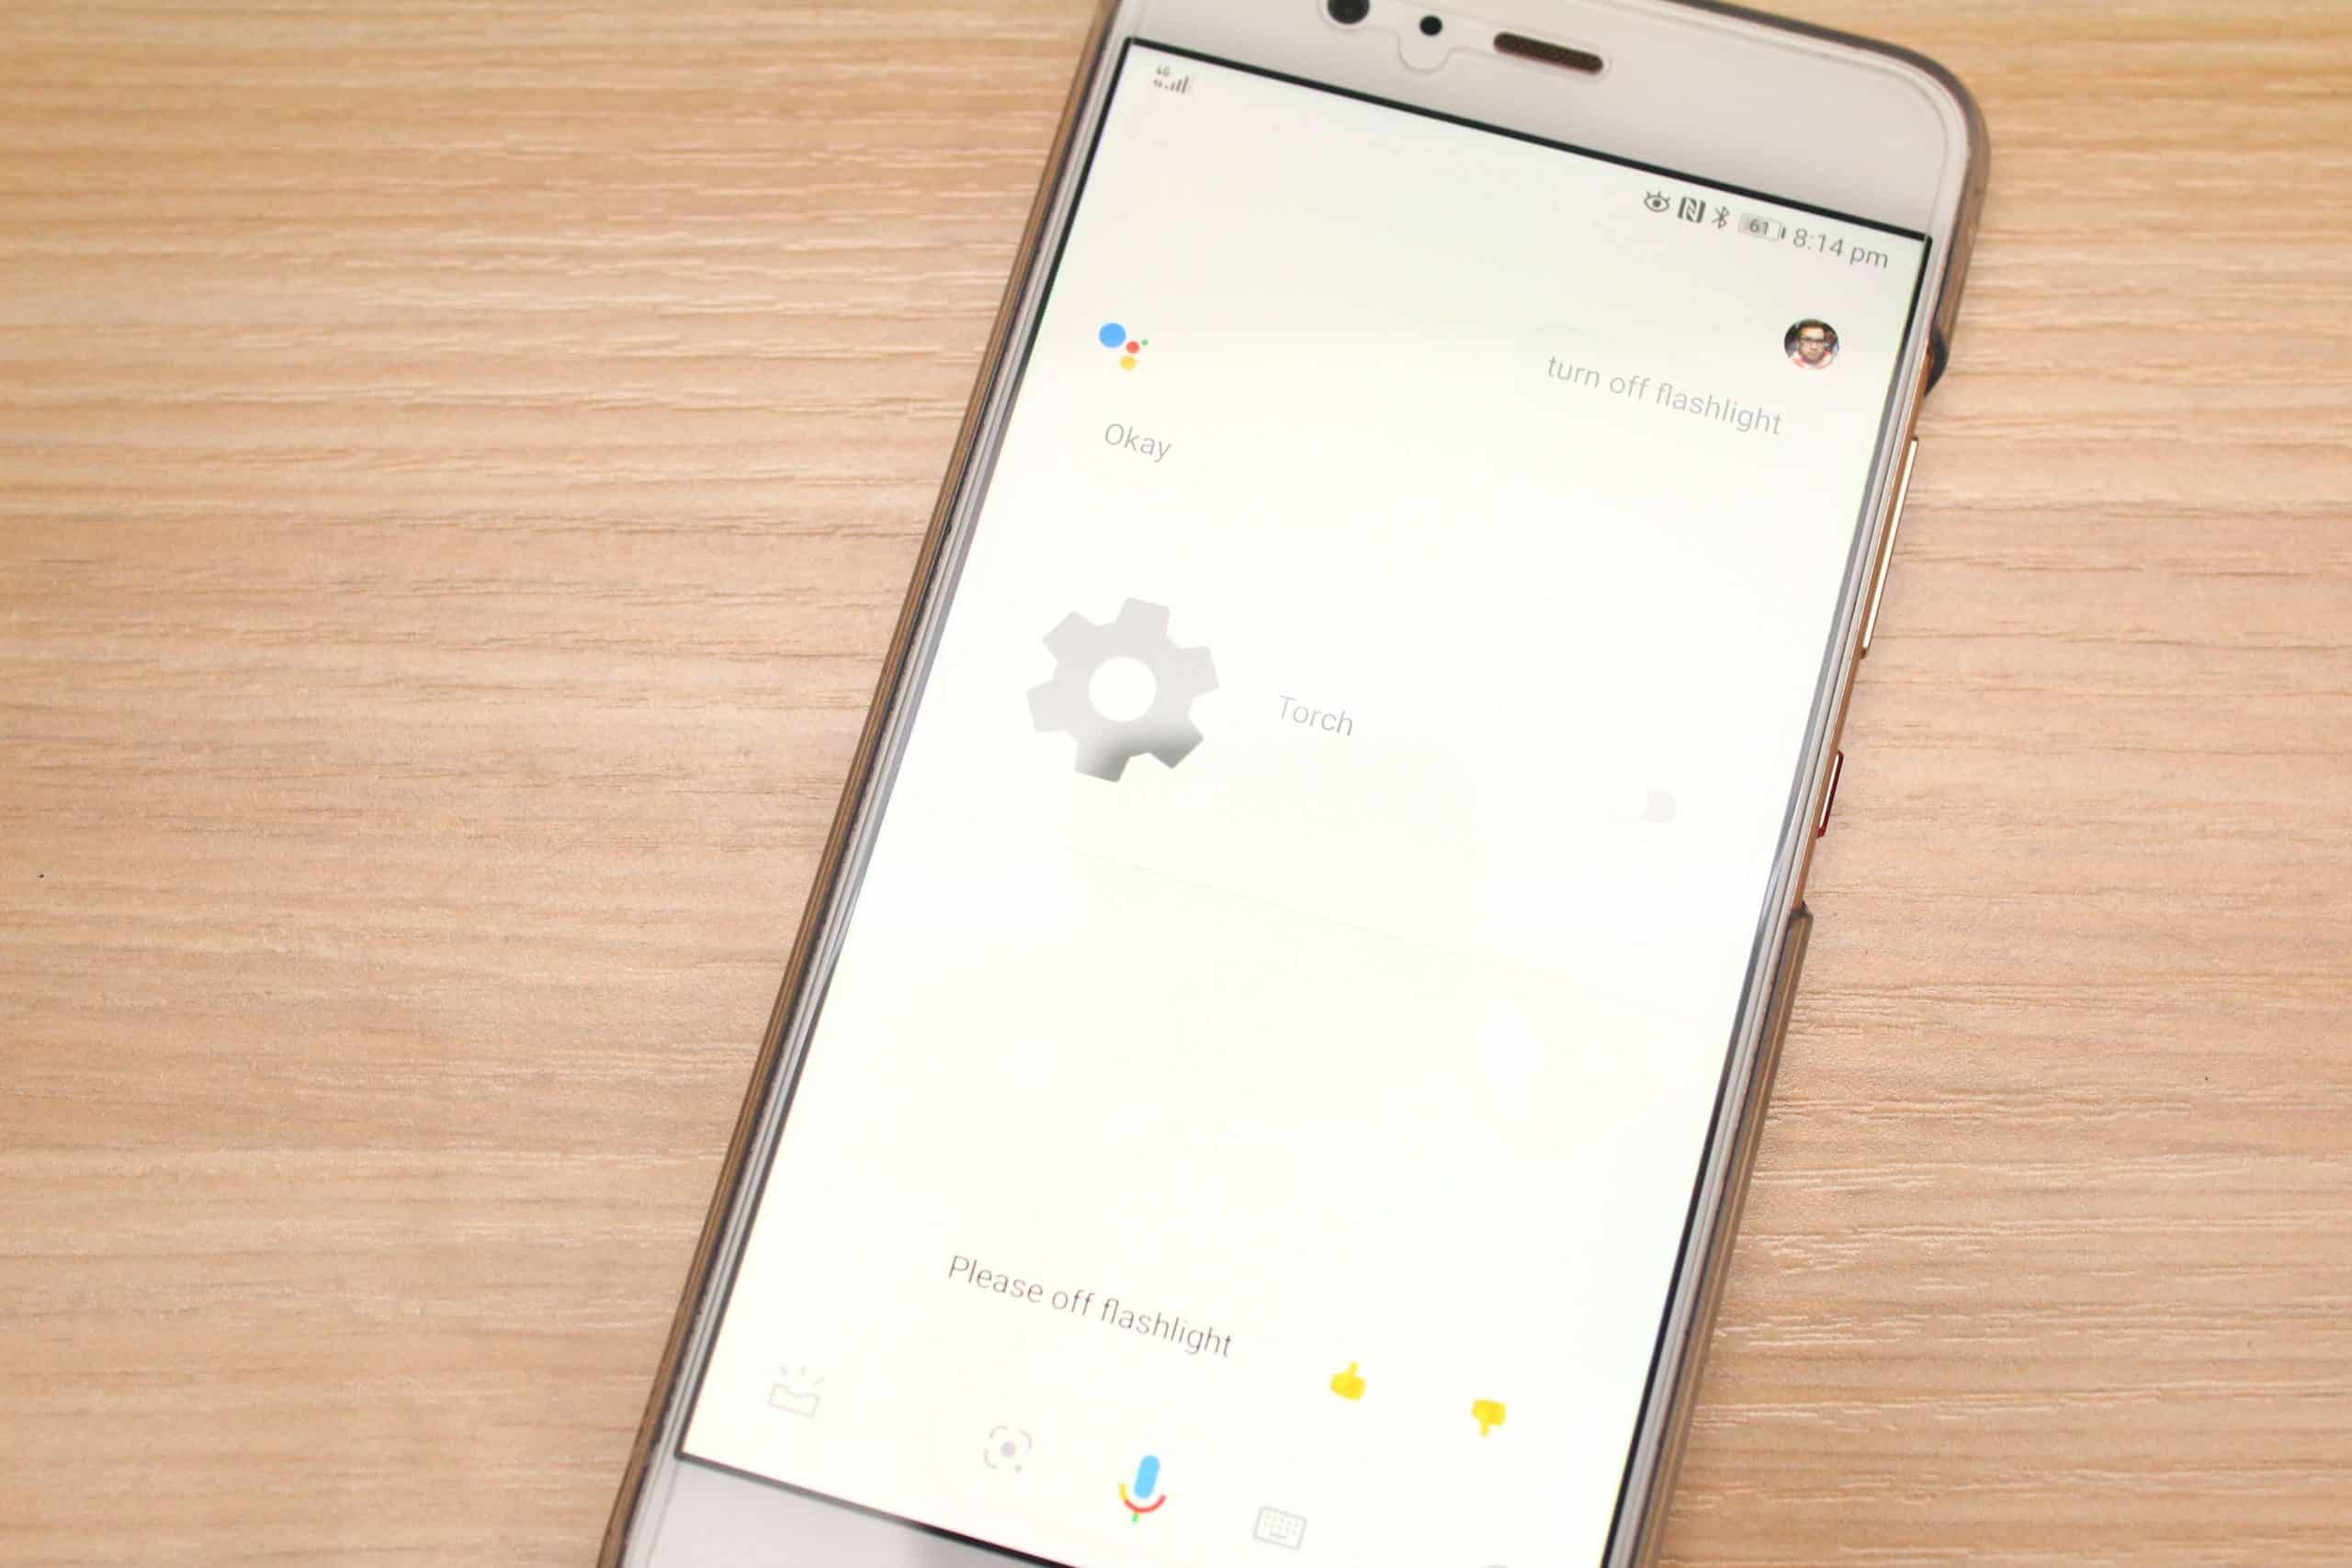 How To Turn Off Flashlight On Iphone >> How To Use Google Assistant To Turn Device Flashlight On